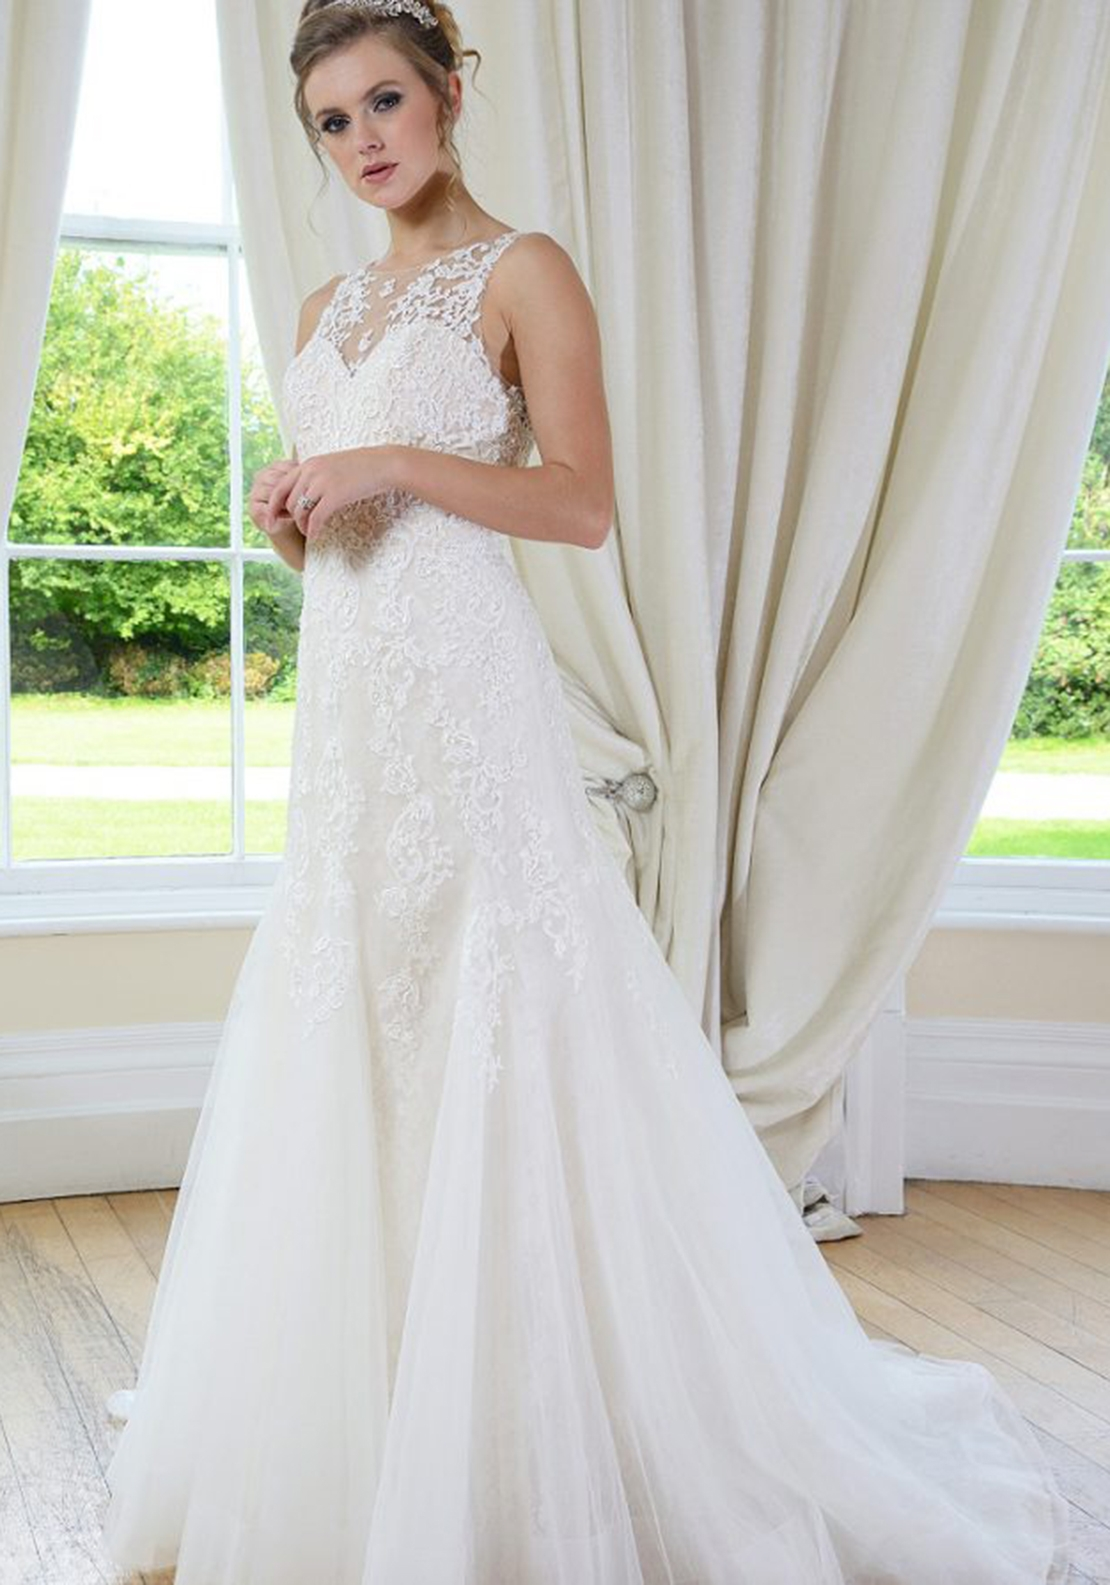 Catherine Parry The Seren Collection Megan Wedding Dress